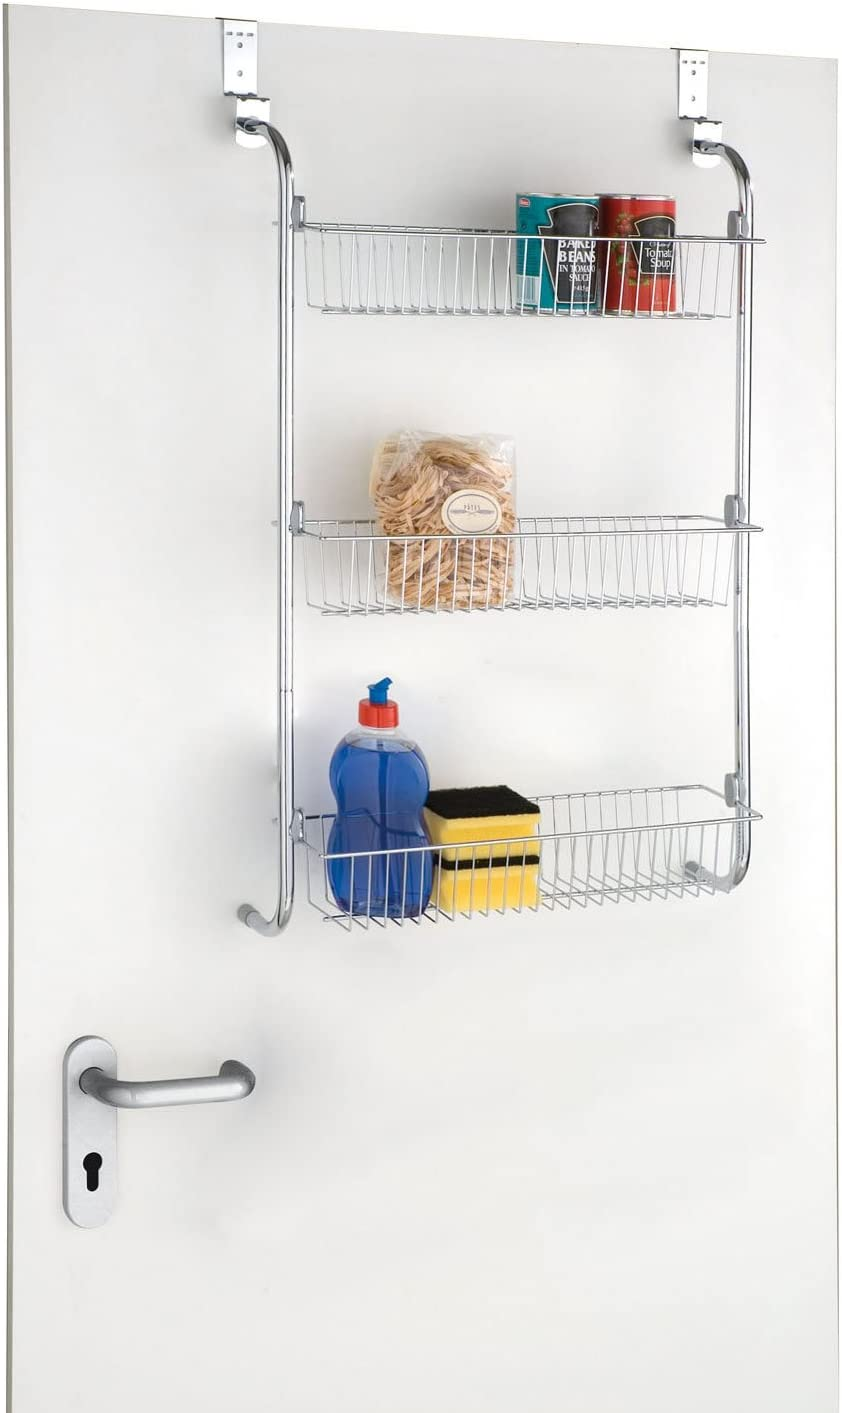 Taylor & Brown® 3 Tier Chrome Over Door Hanging Kitchen Bathroom Storage Rack Shelves